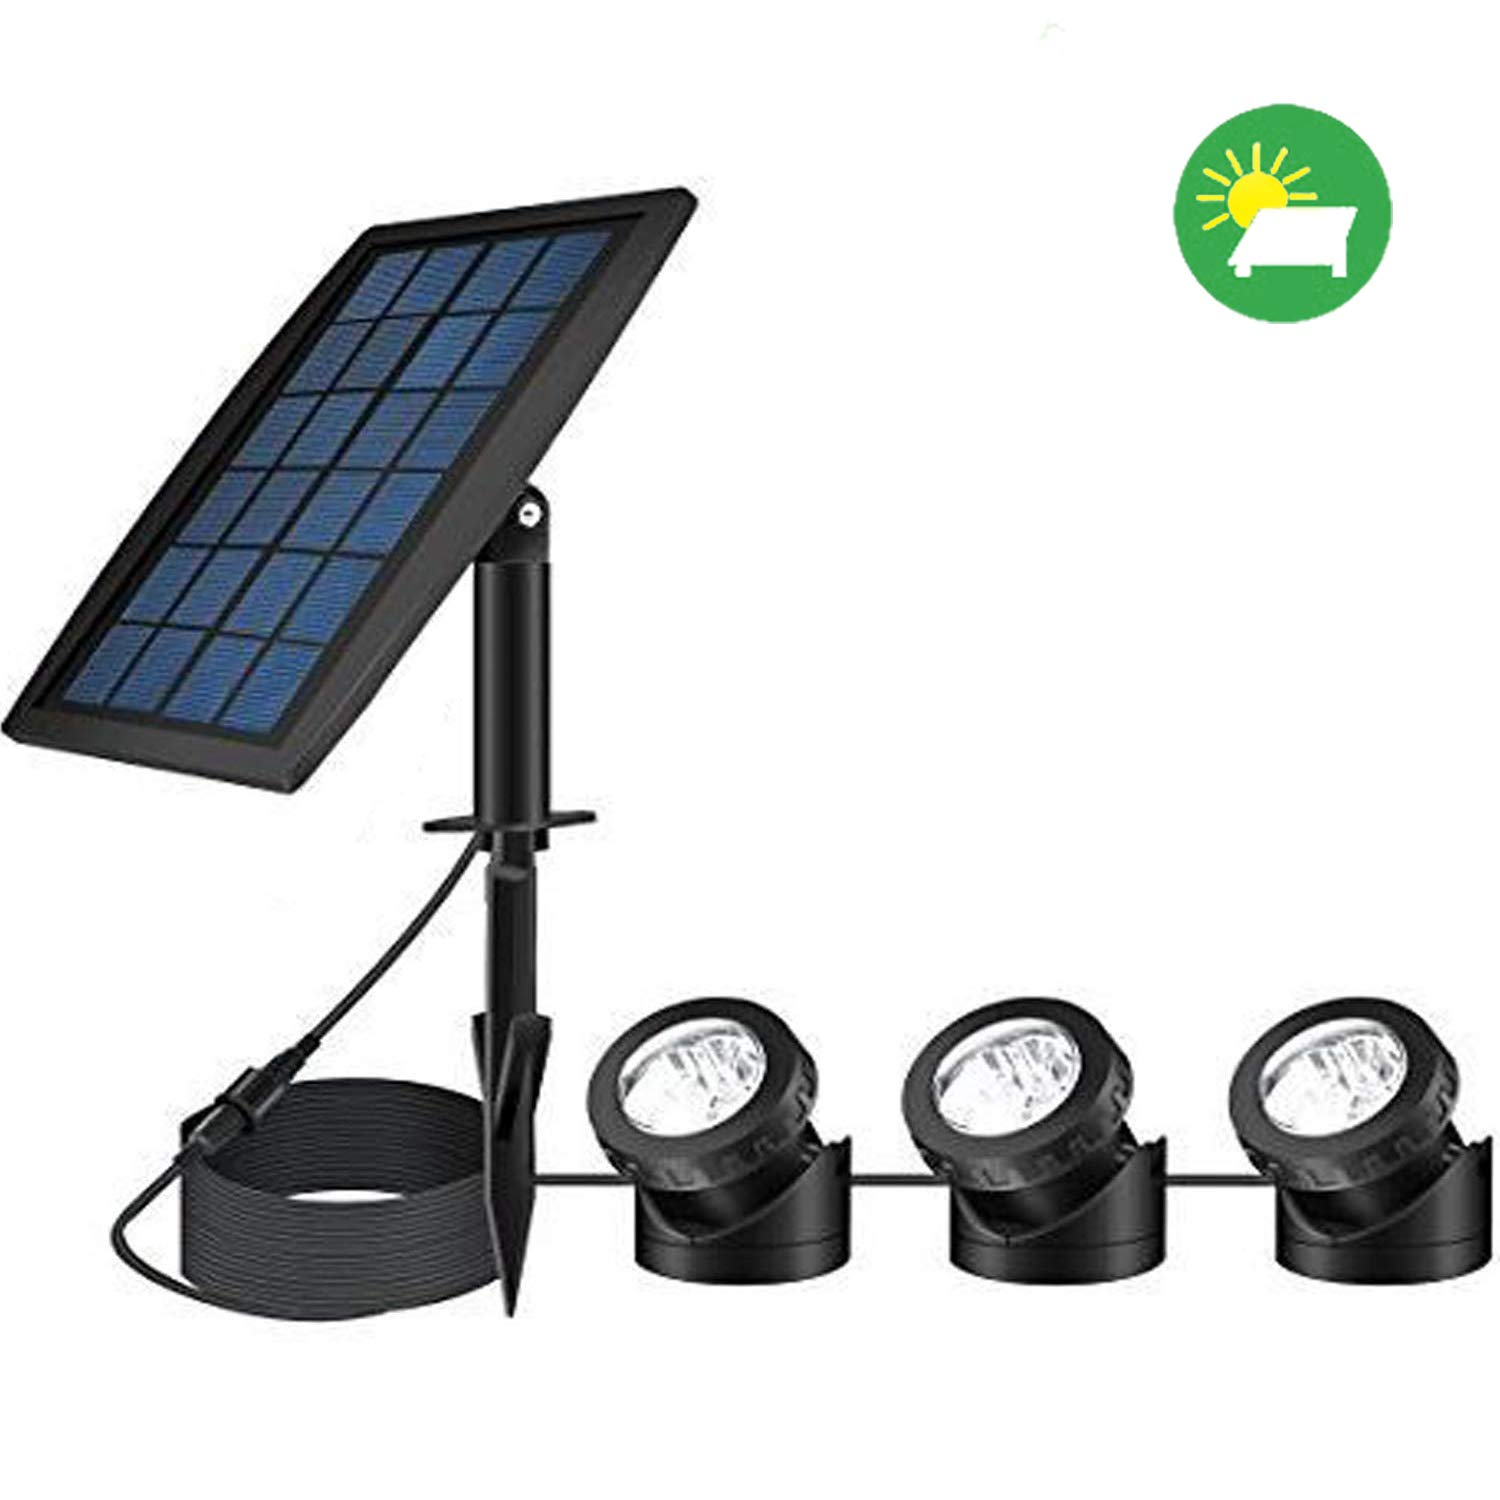 FEIFEIER Solar Pond Spotlights,Weatherproof Solar Powered Pure White Color LED Landscape Spotlight 3 Lamps Adjustable Lighting Angle Bright Security Lighting for Garden Pool Pond Outdoor Decoration by FEIFEIER